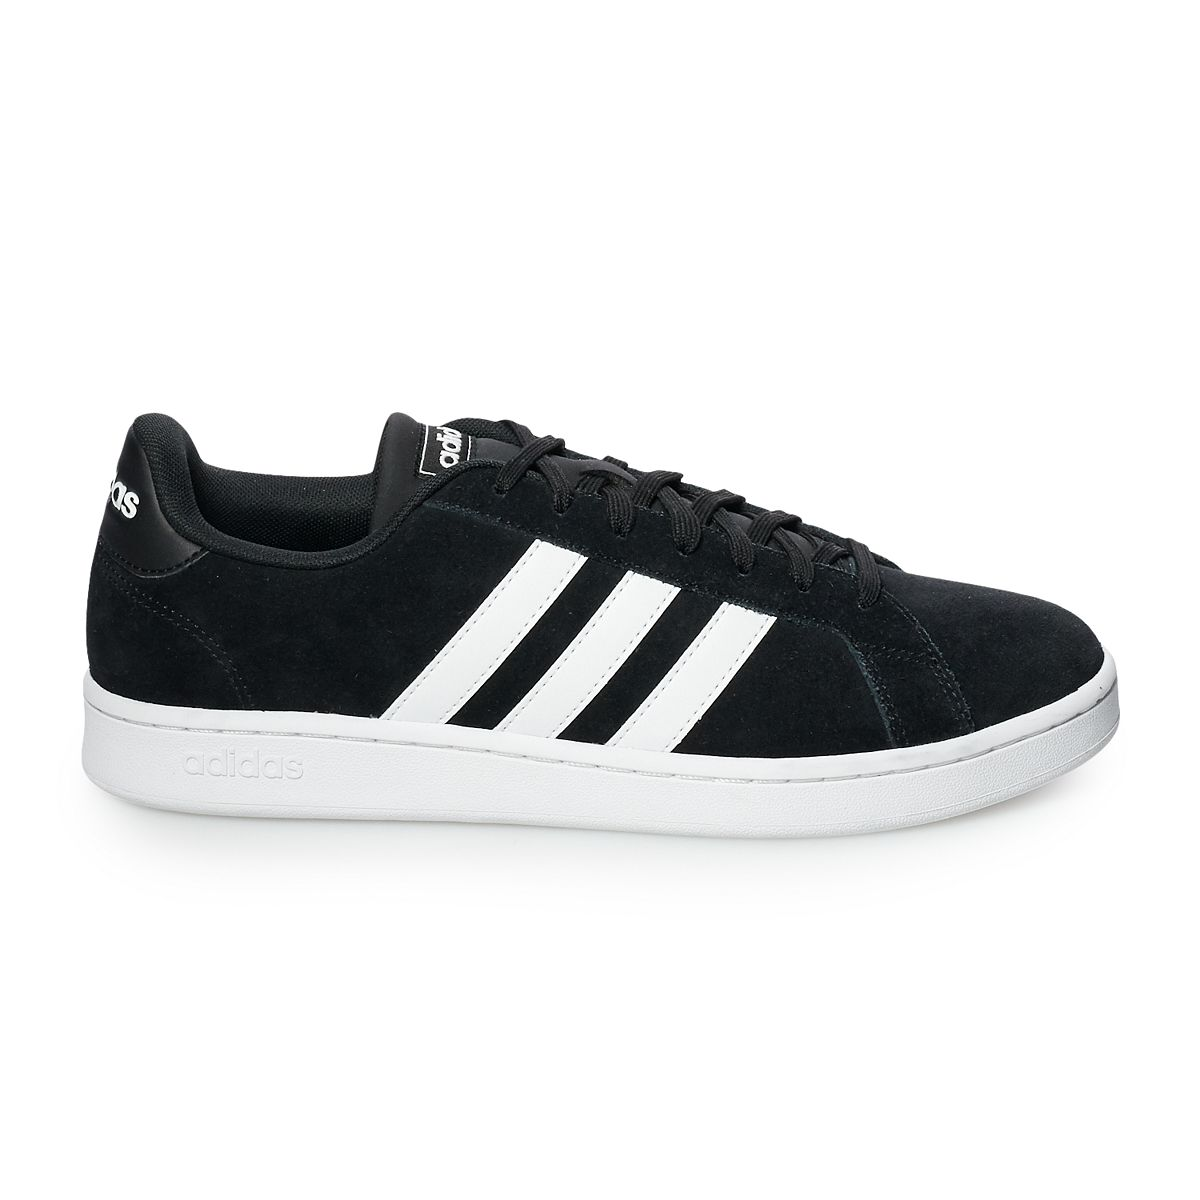 adidas Grand Court Men's Suede Sneakers Gray White RvnrW